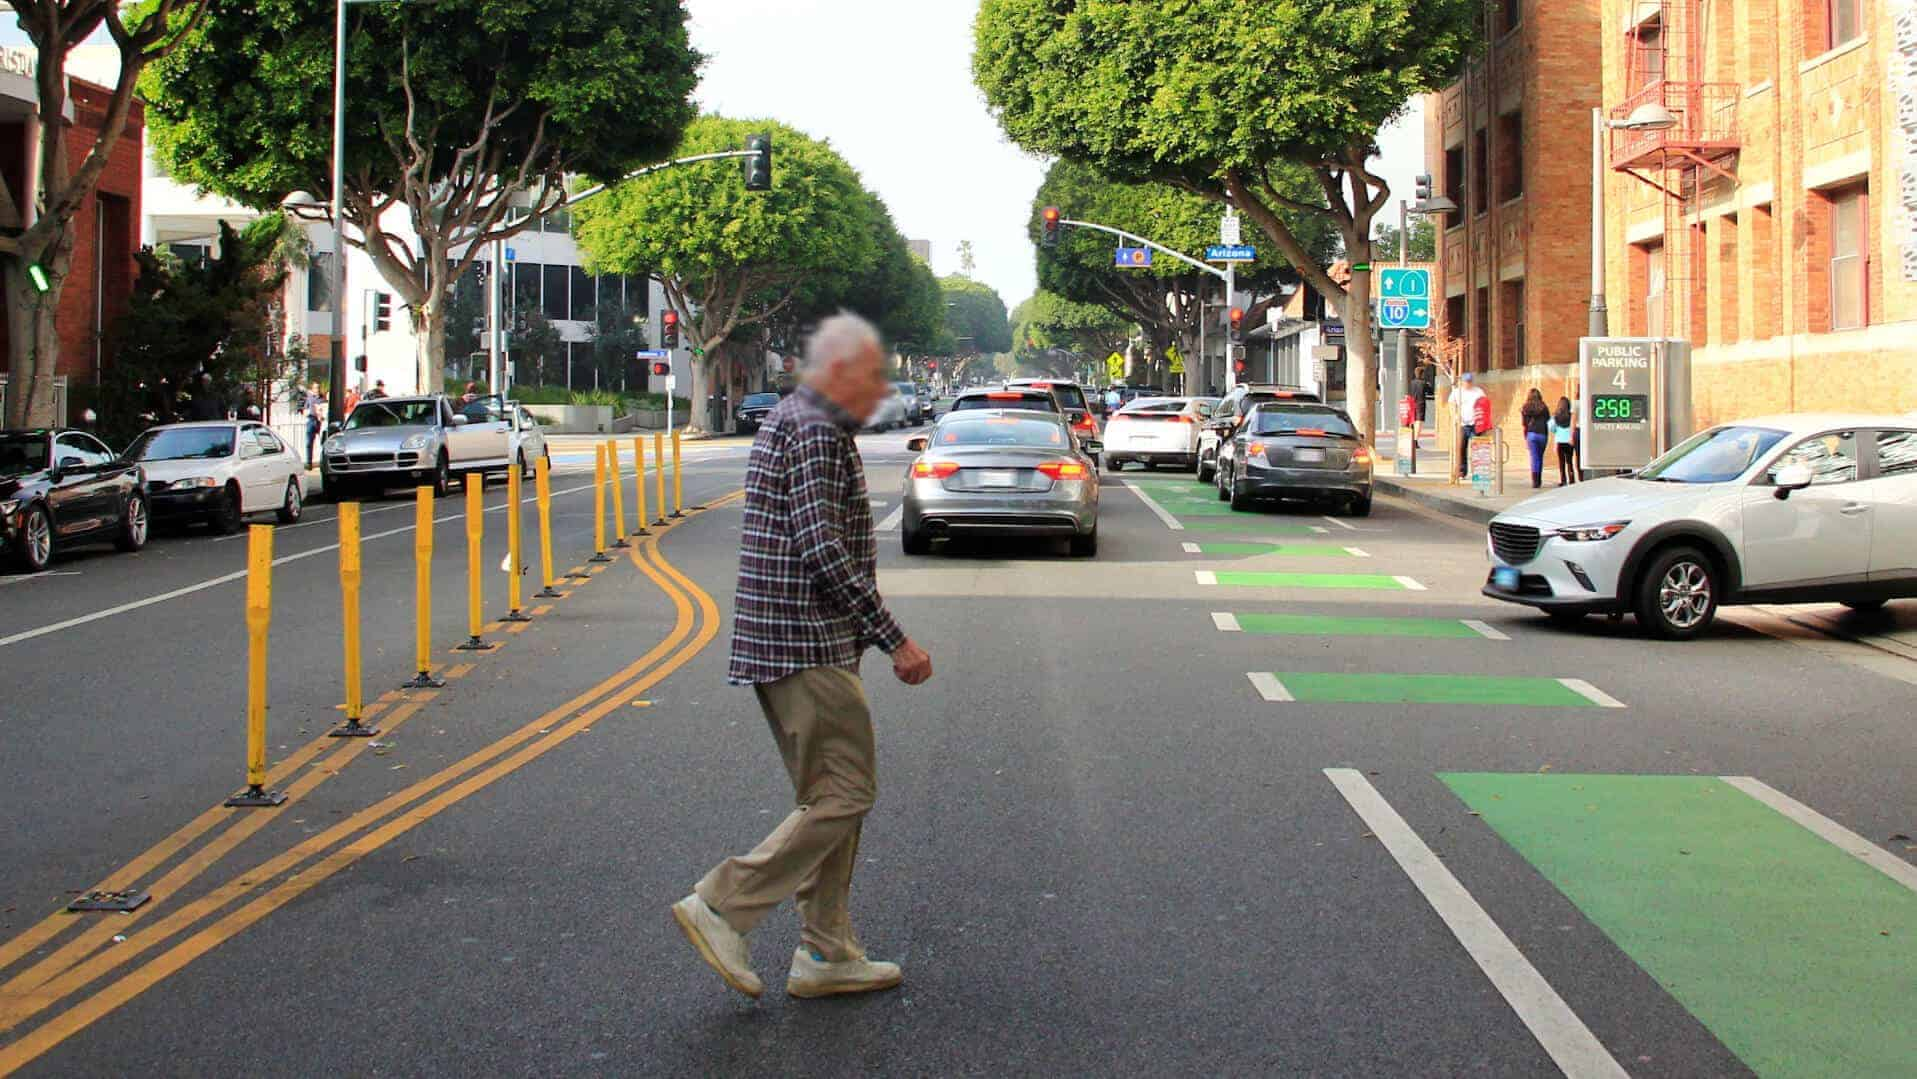 Elderly pedestrian crossing the street at an at an unsuitable crossing point